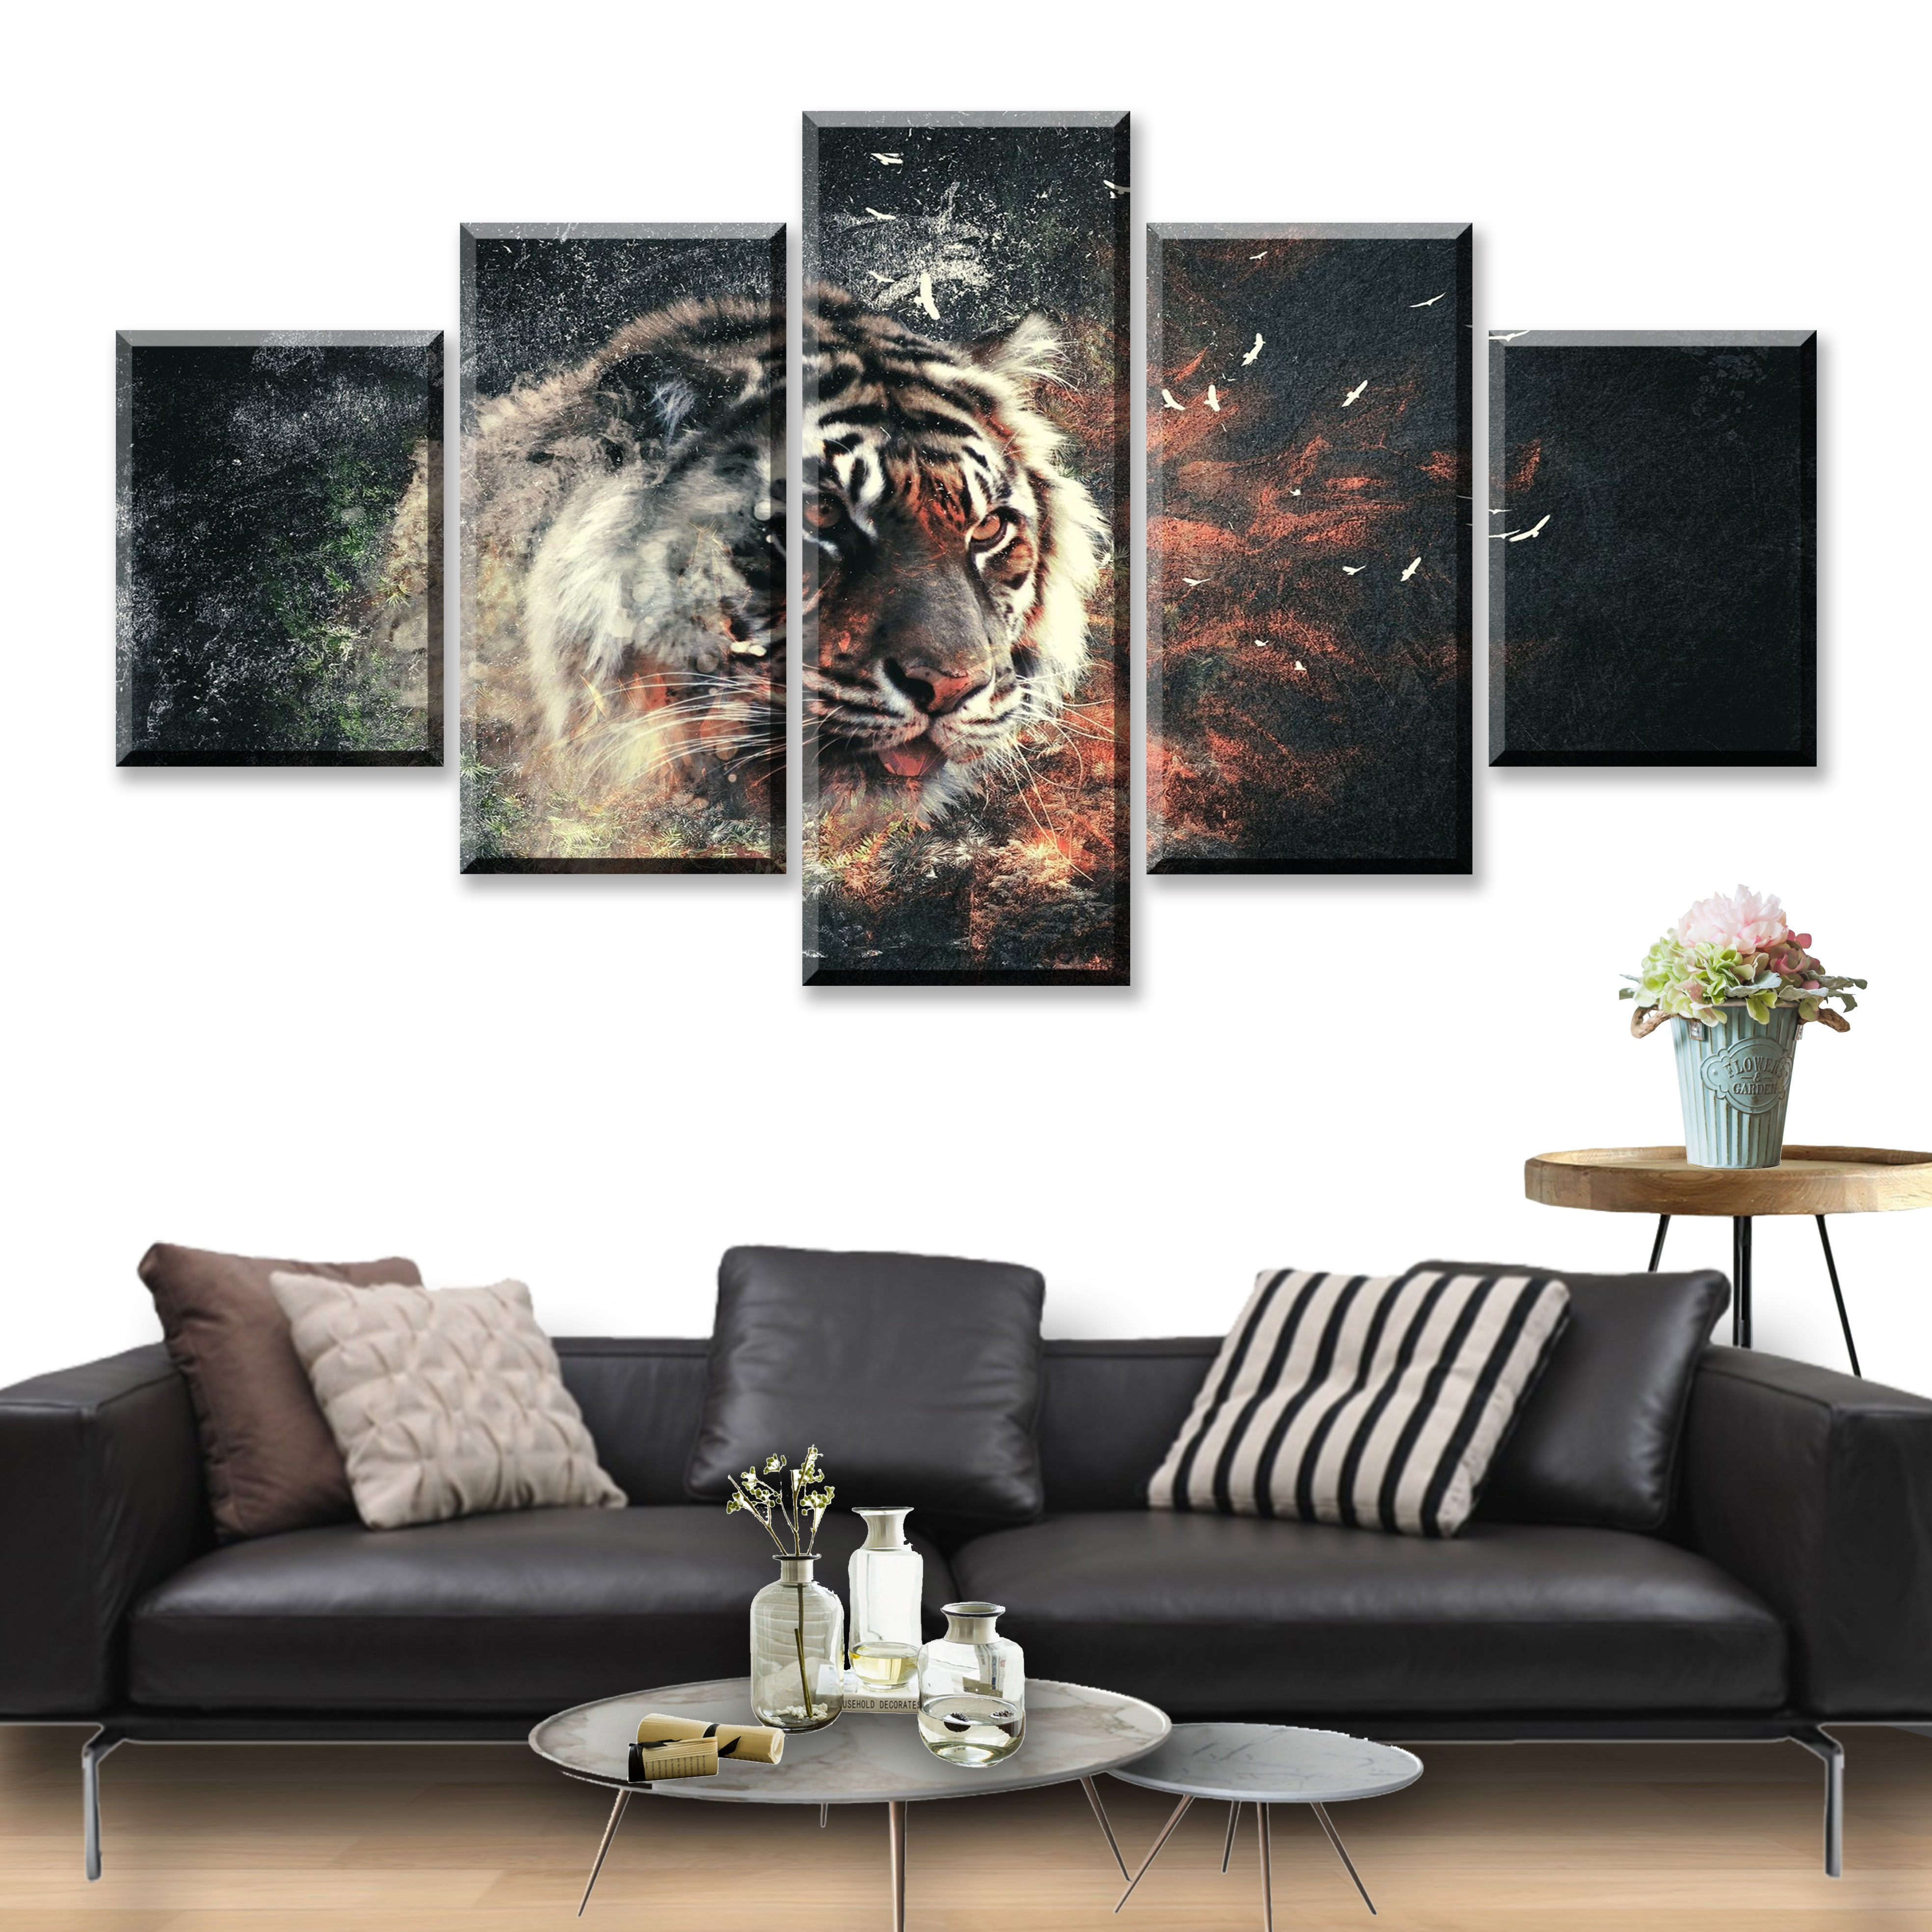 5 Piece Animal Painting Modern Home Wall Decor Canvas Picture Art HD Tiger Panel Arts Framework Decoration